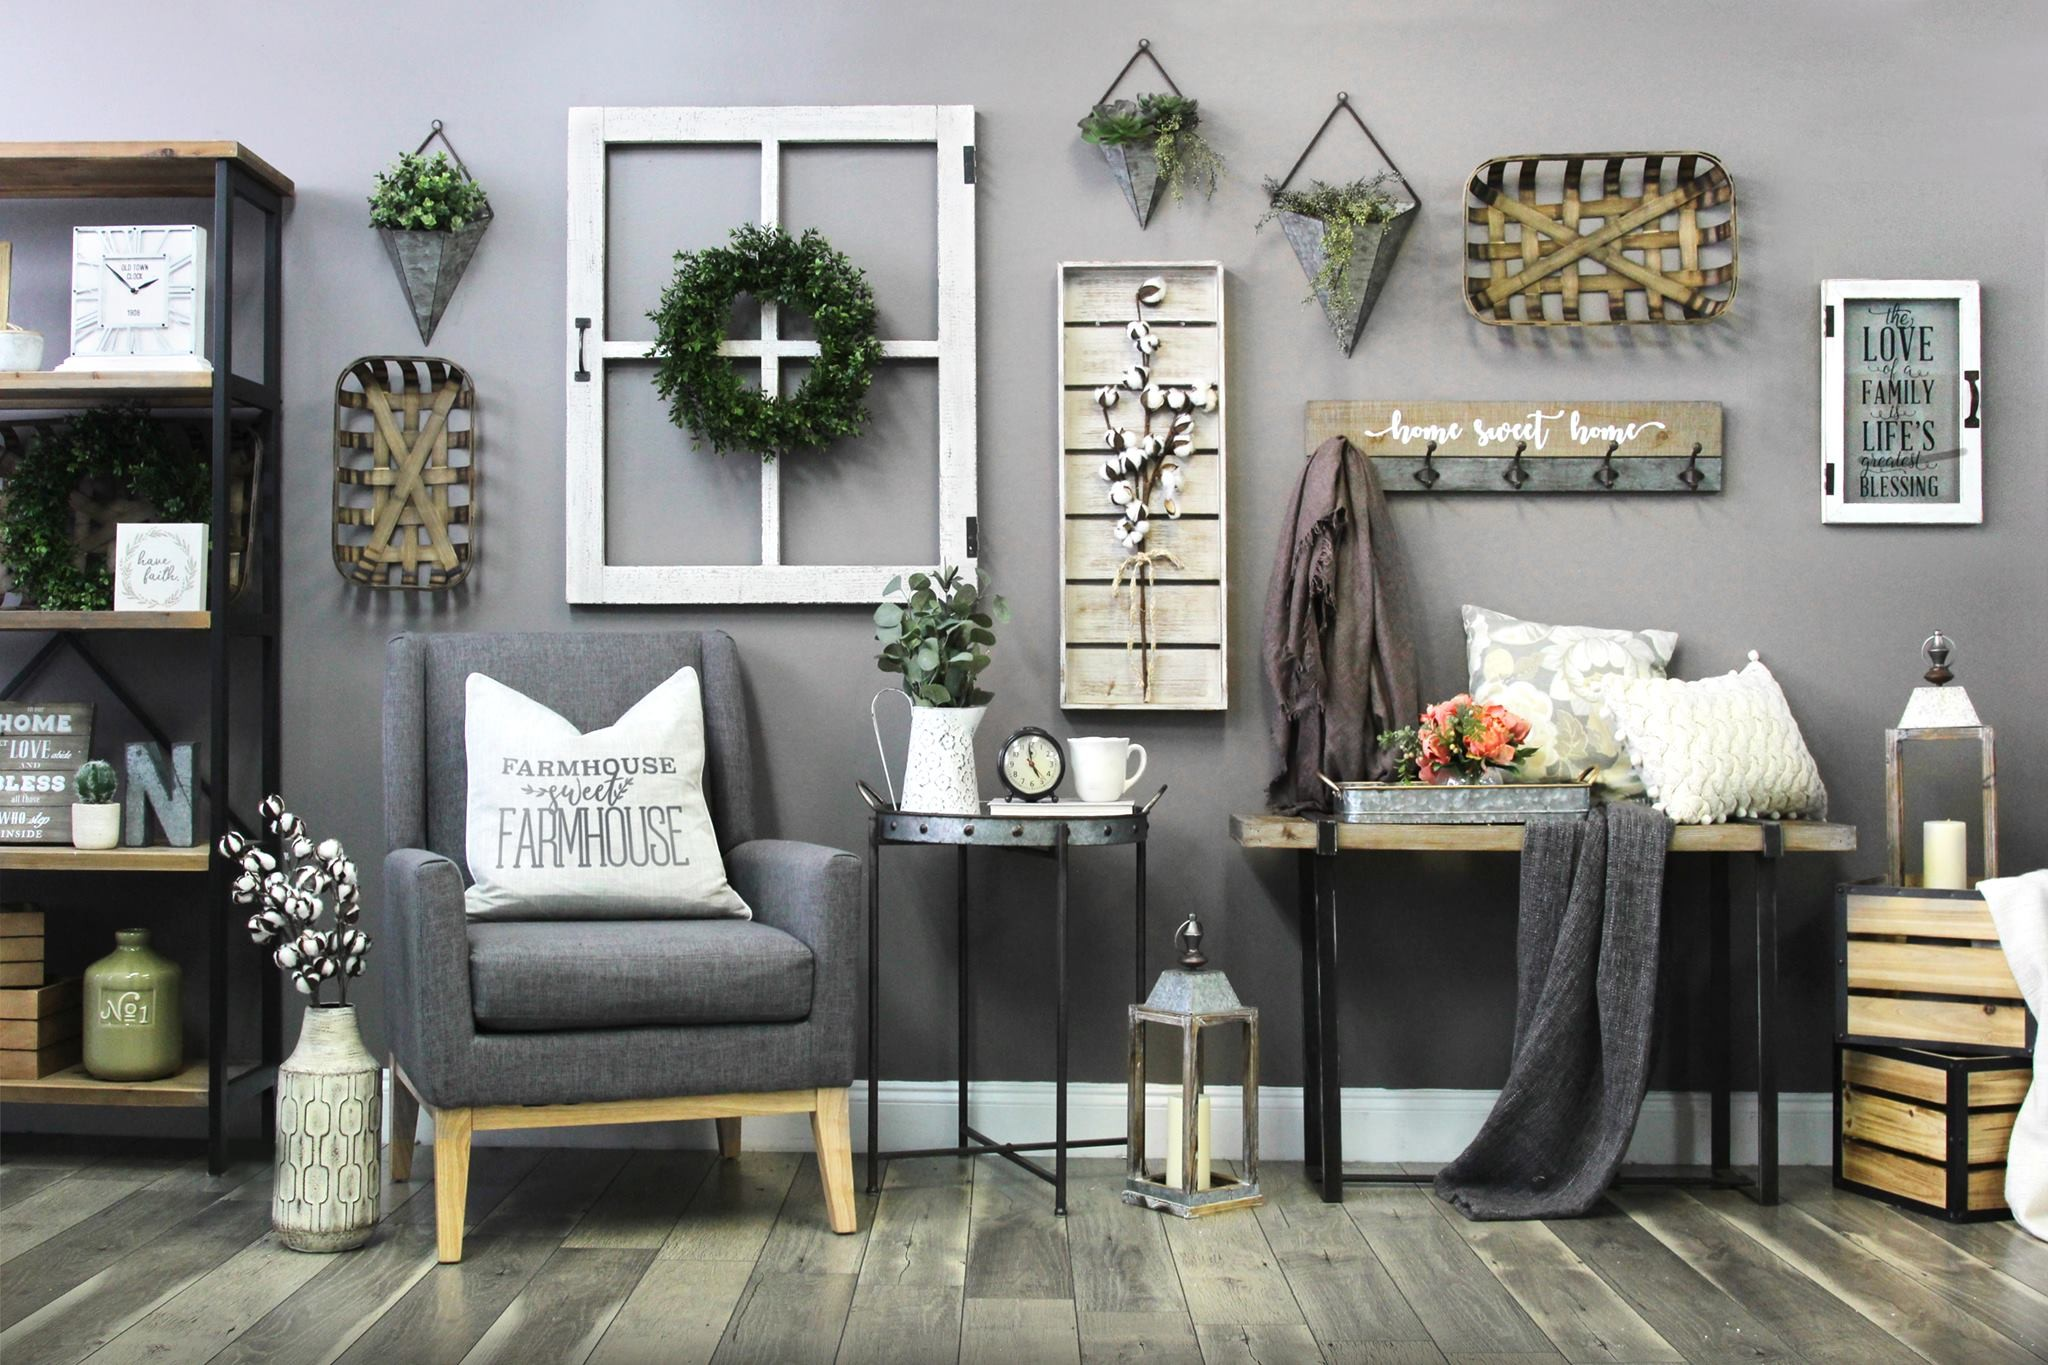 Top Home Decor Youtube Channels for Home Decor Ideas, DIY Projects and Interior Decorating in 2021